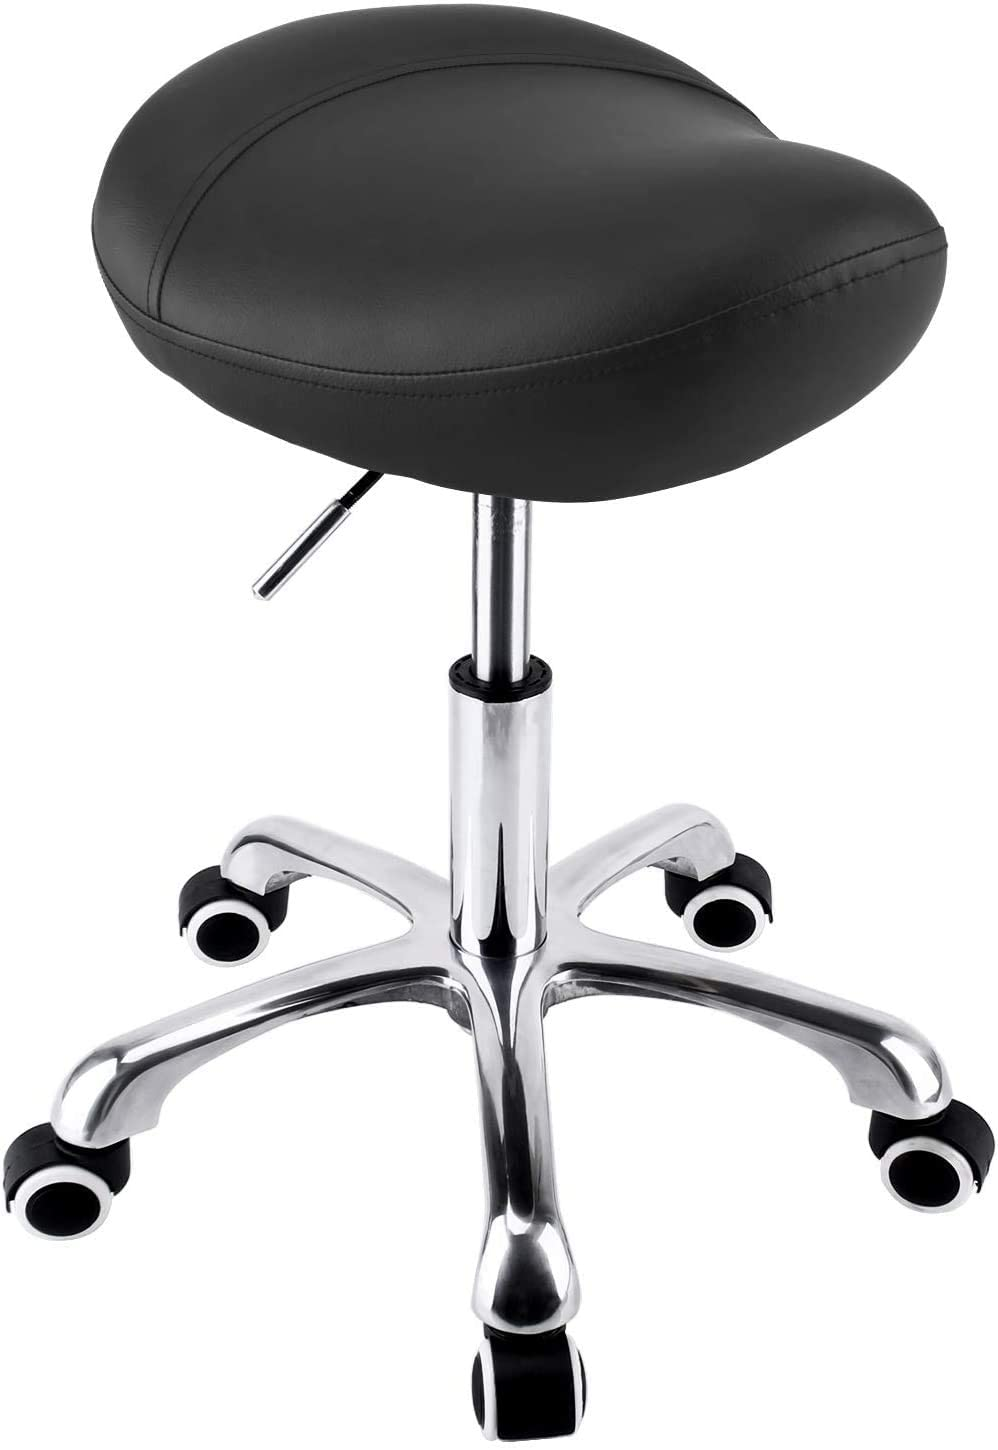 Hydraulic Saddle Stool with Wheels Rolling Adjustable Height for Clinic Dentist Spa Massage Medical Salons Studio